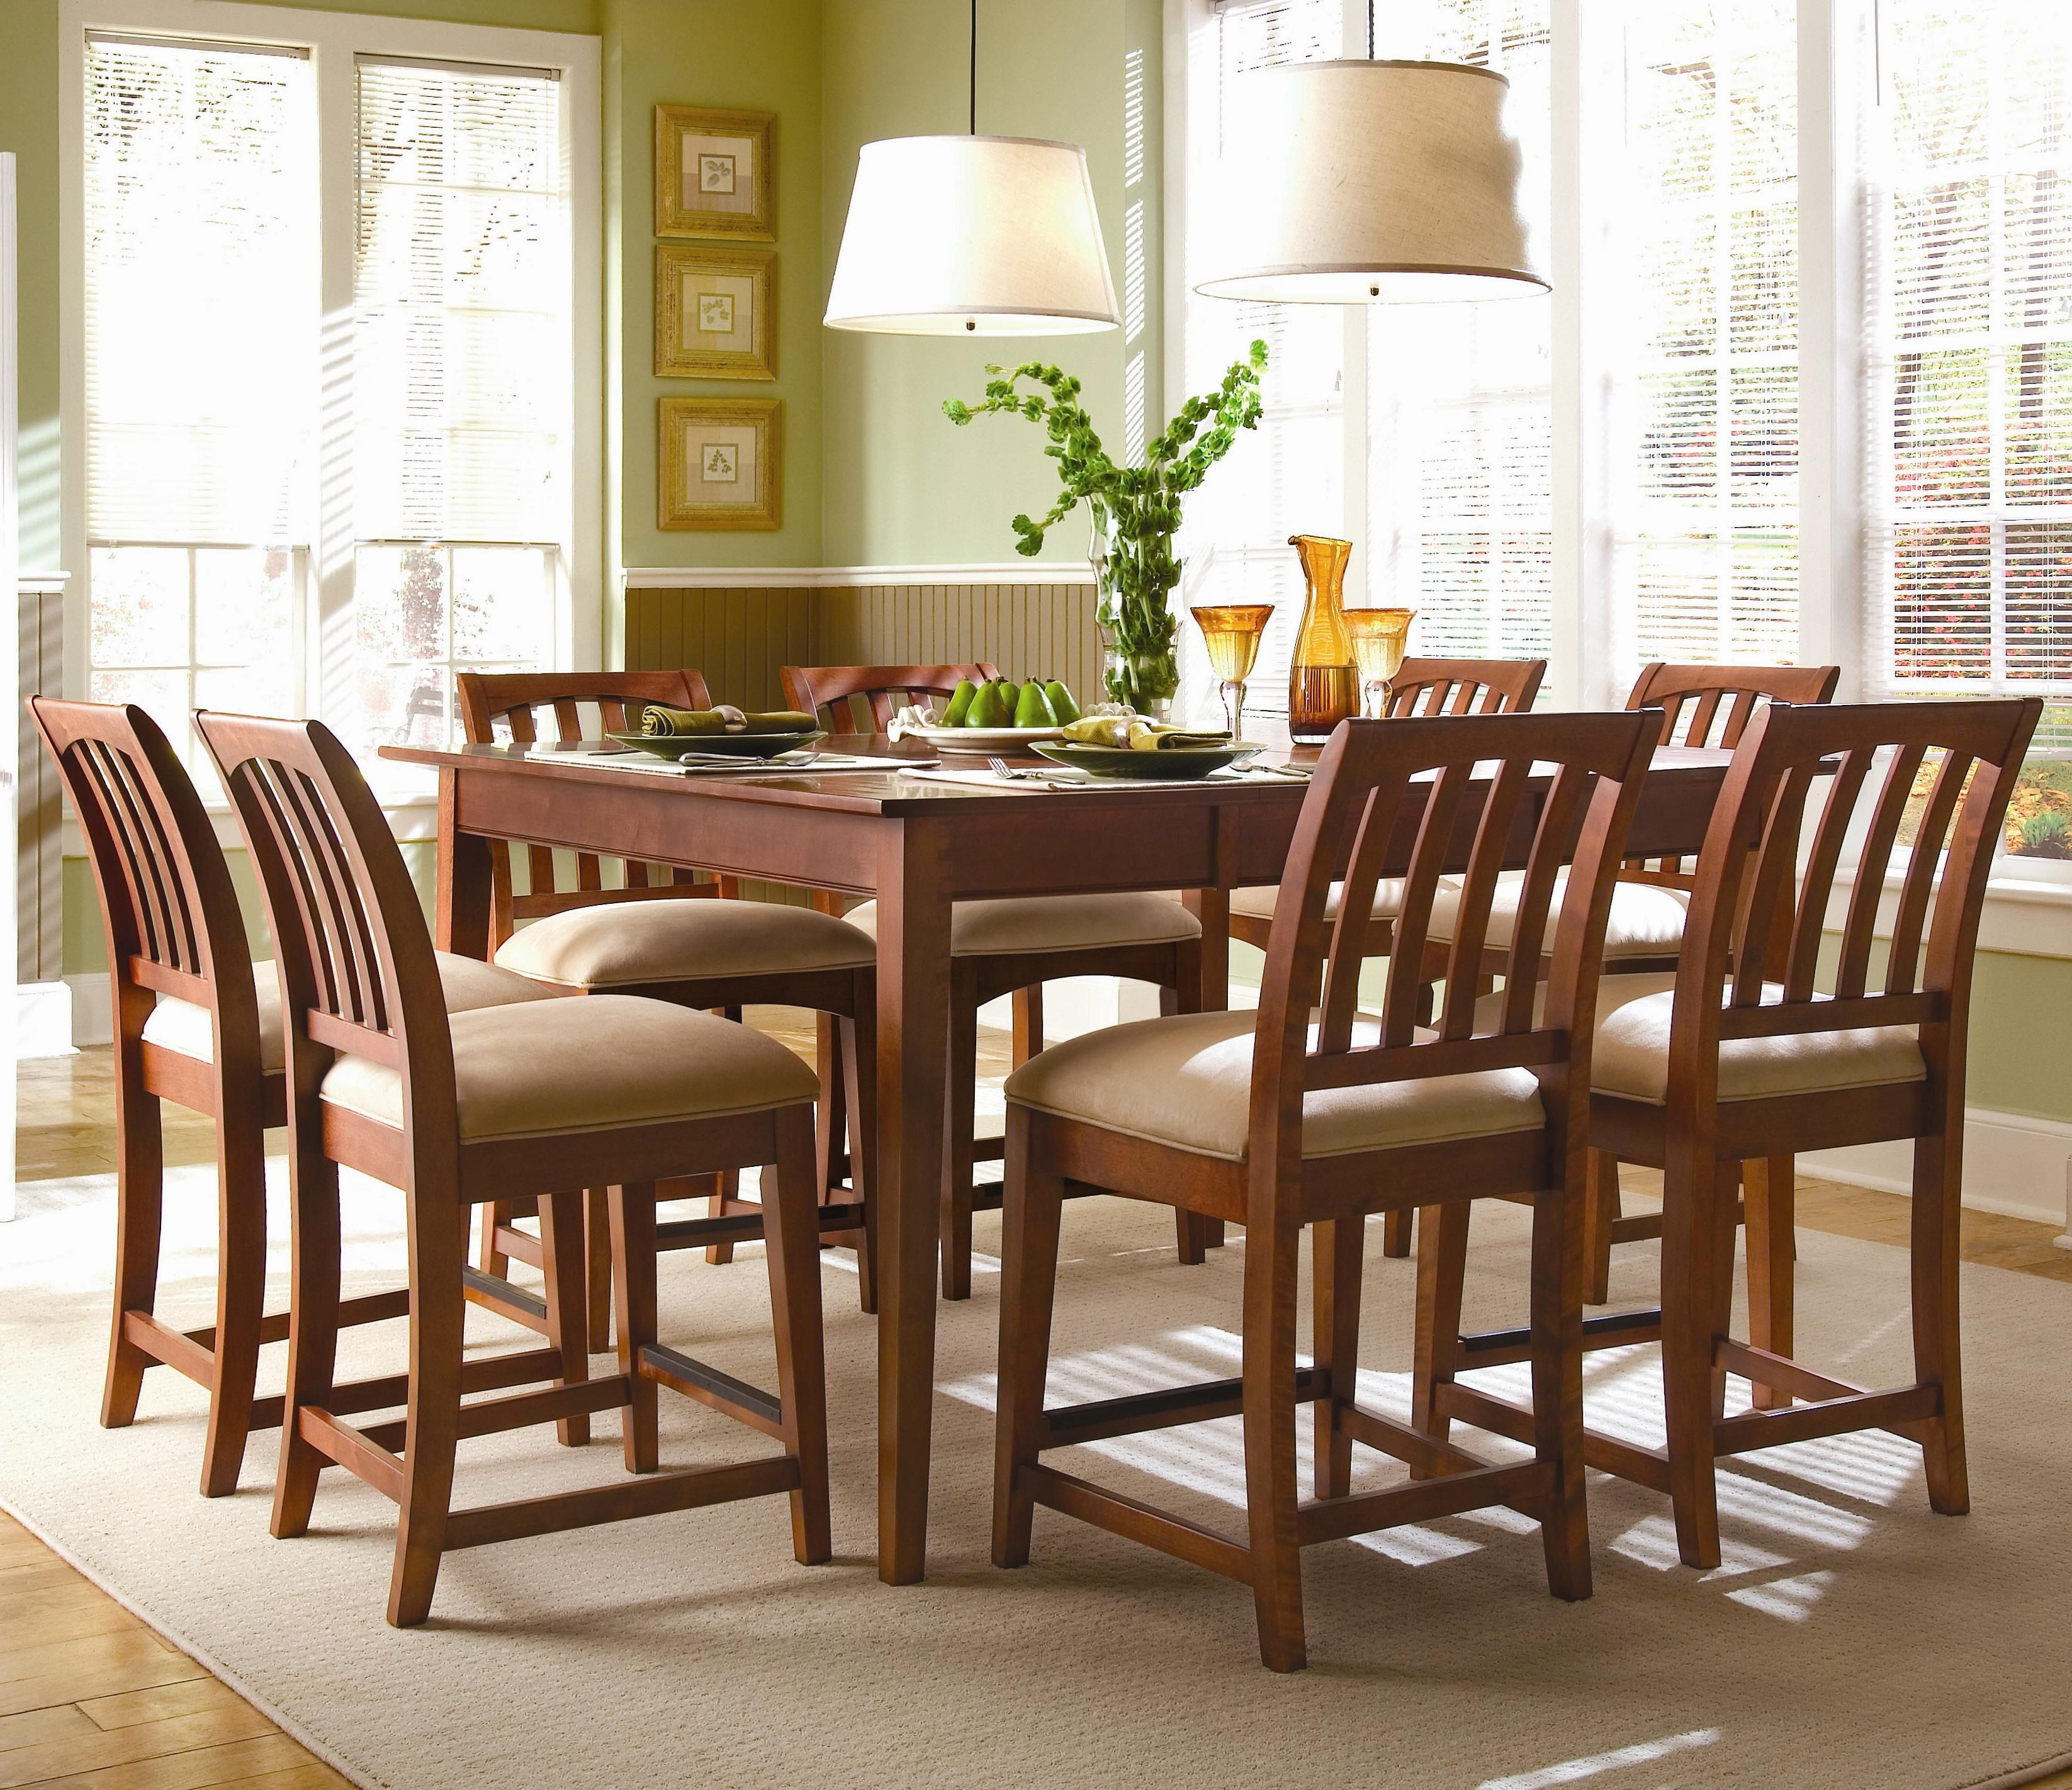 Dining Room Furniture Rochester Ny: Gathering House 9-Piece Tall Dining Set By Kincaid